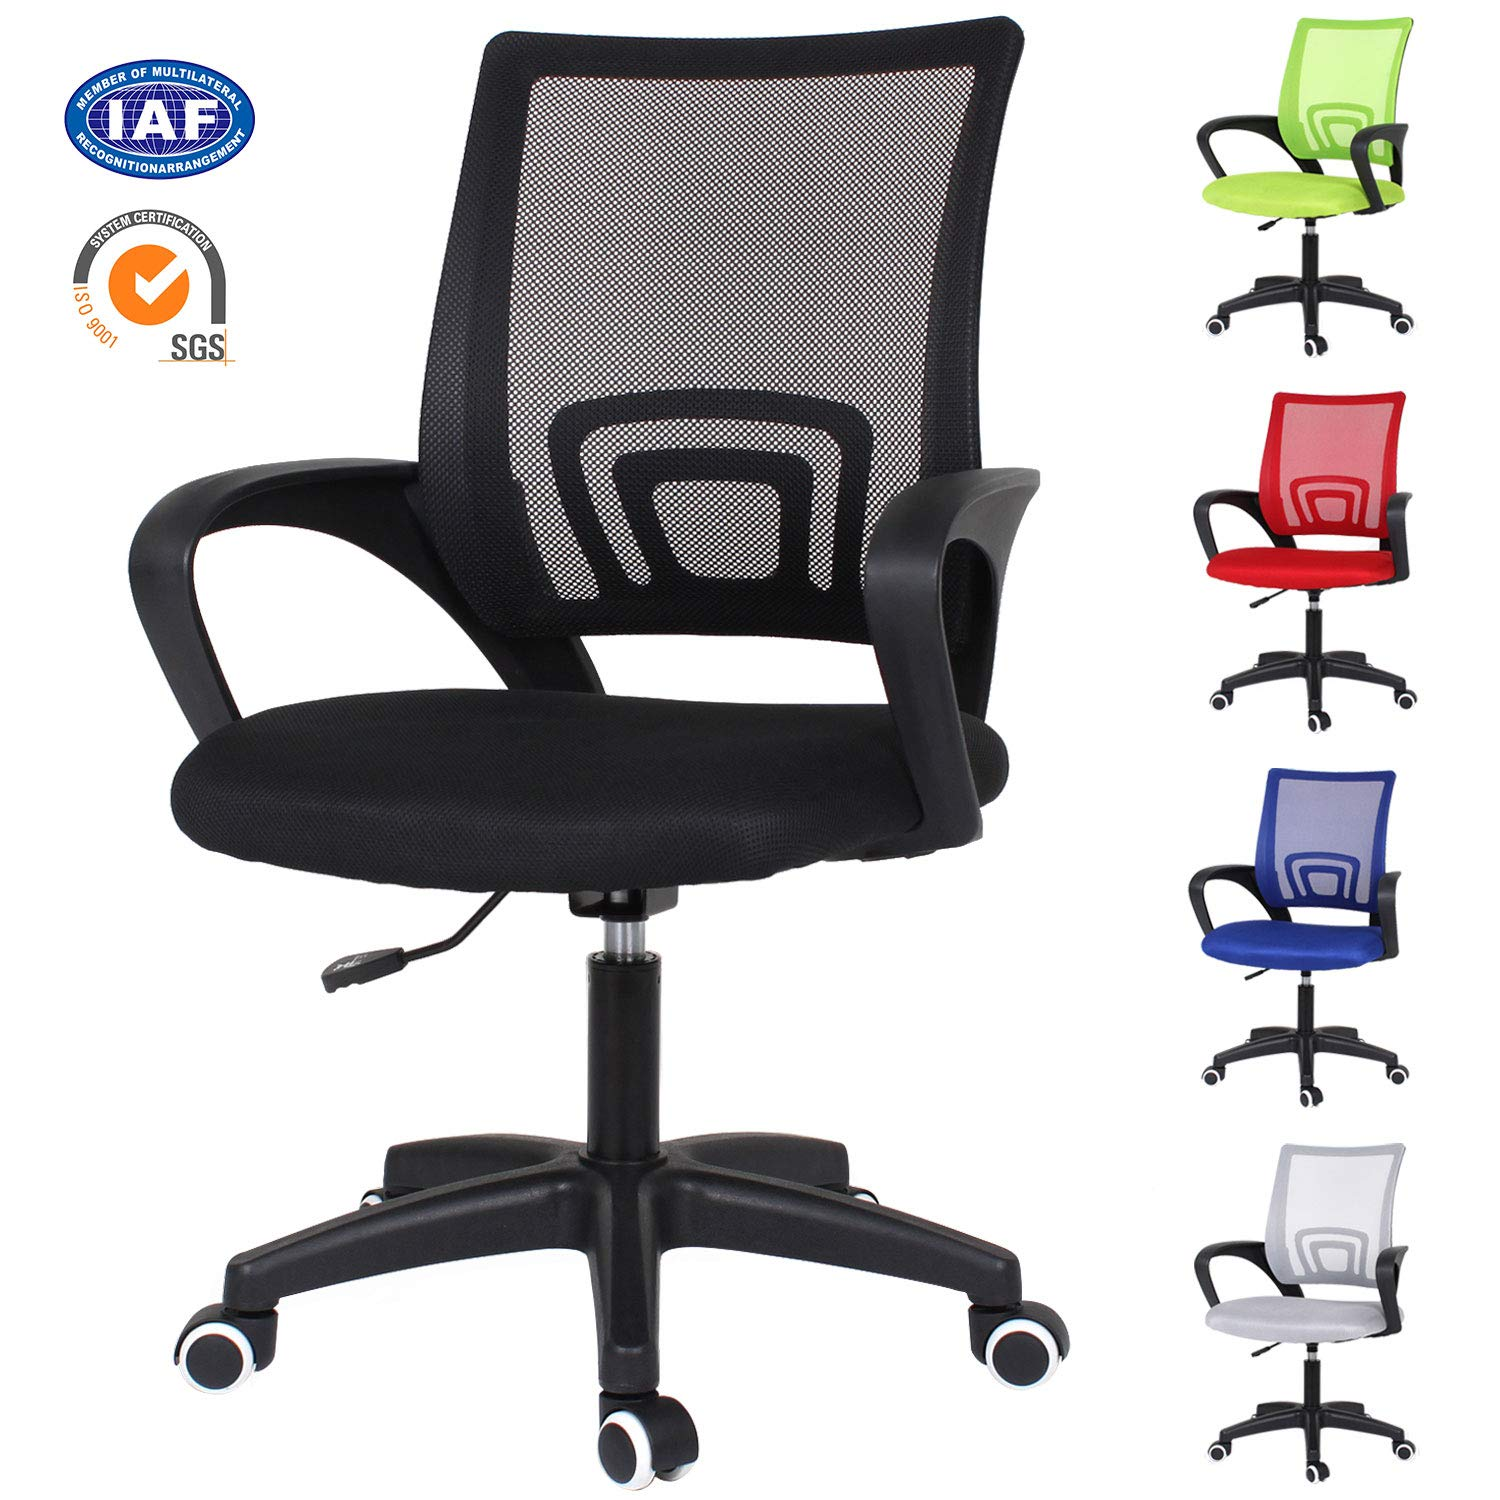 Euco Black Desk Chairs Executive Office Chair Ergonomic Adjustable Task Chair Comfy Padded Mesh Chair